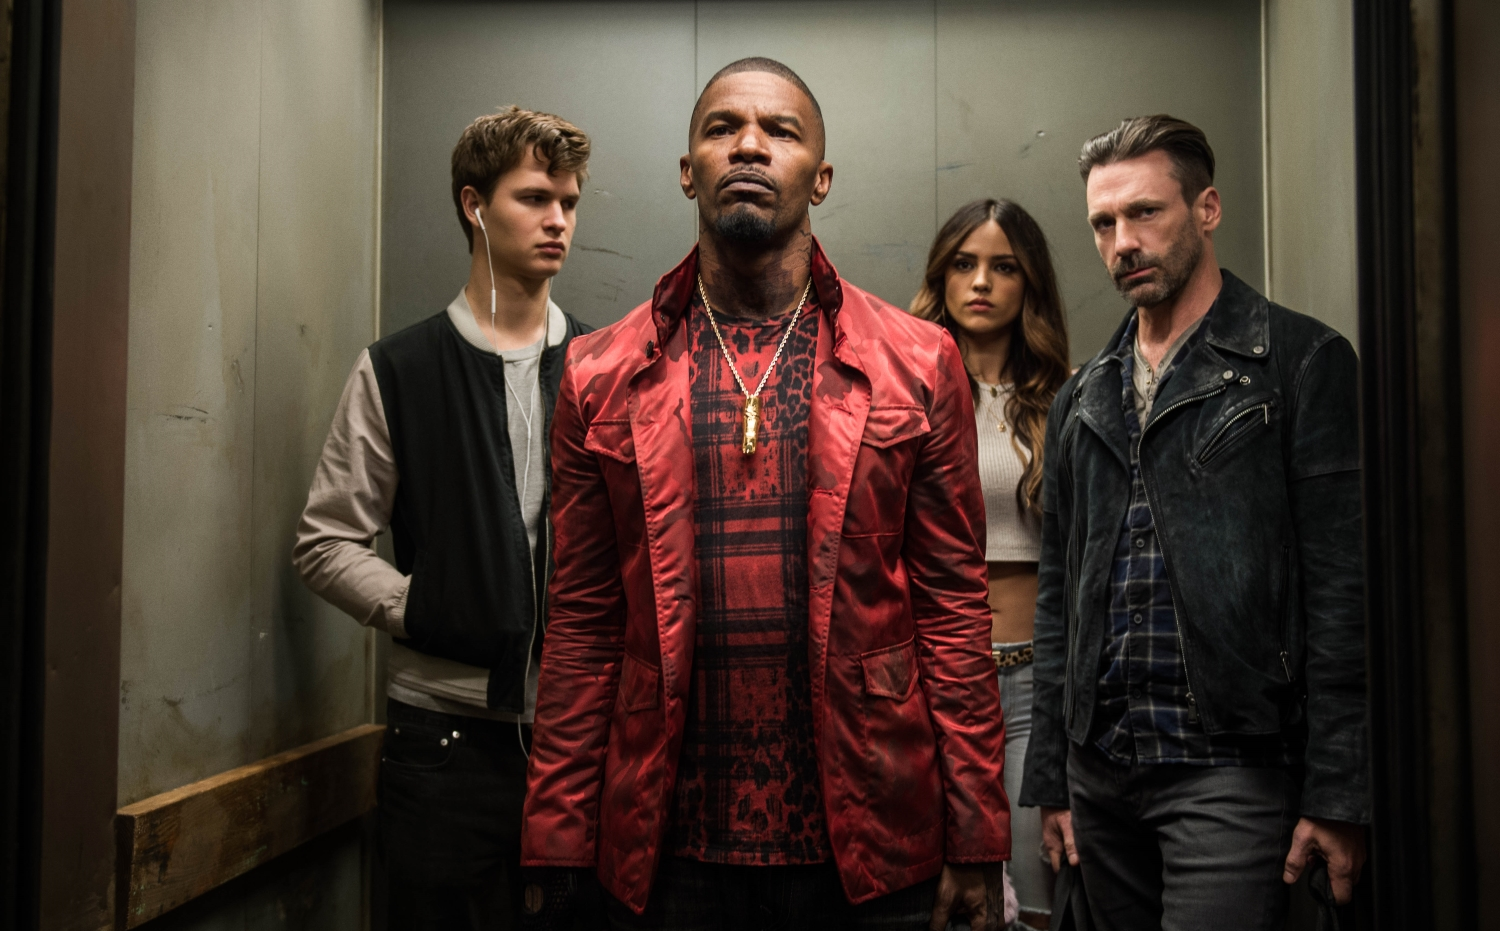 New Movie: Baby Driver (Starring Ansel Elgort, Jamie Foxx, Kevin Spacey) Trailer